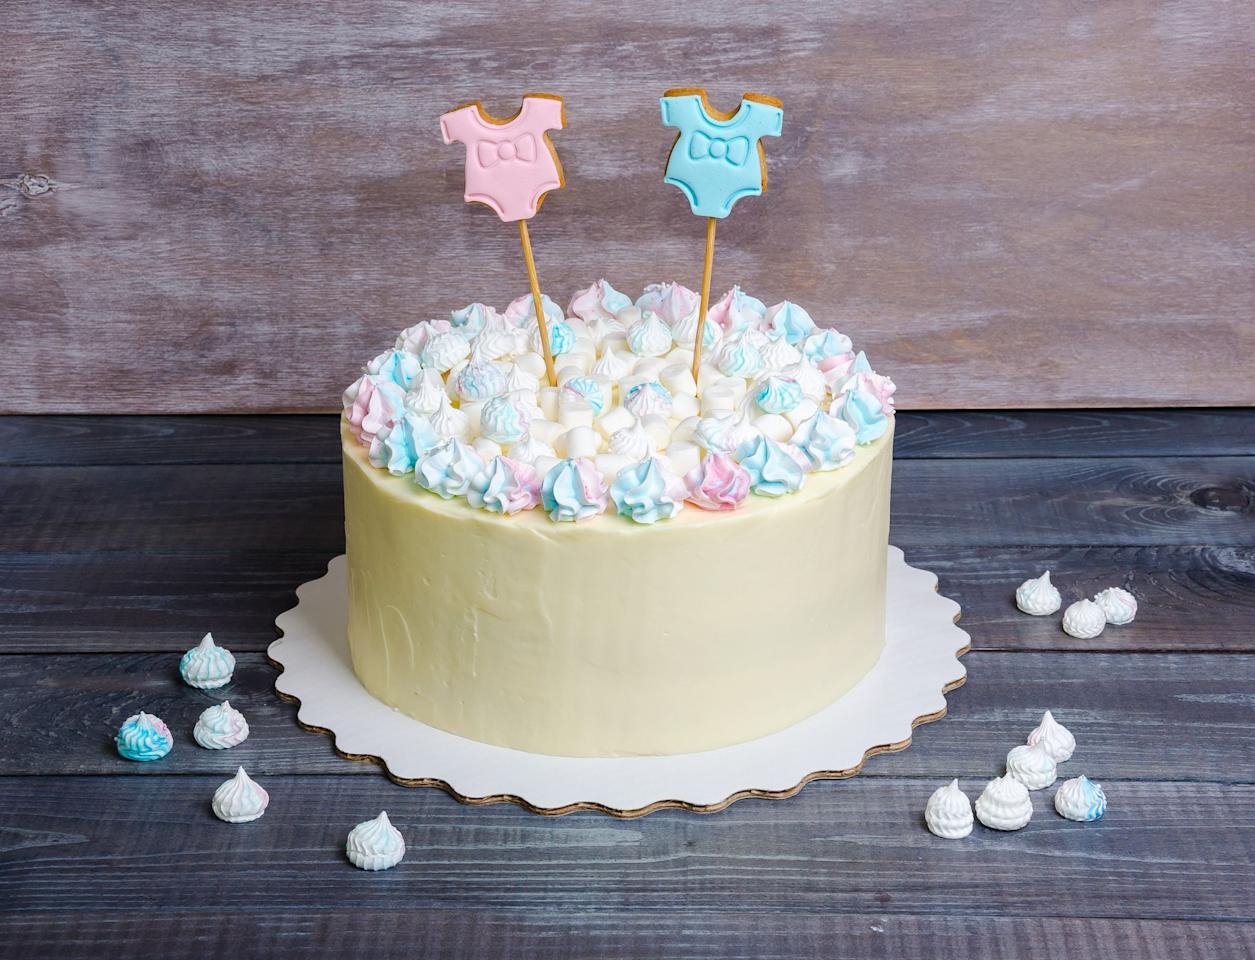 "<p>For many parents-to-be, learning the sex of their unborn baby is a magical, once-in-a-lifetime moment. Gender reveal parties can make that moment even more special by getting friends and family in on the surprise in a festive setting.  </p><p>There are no rules when it comes to <a href=""https://www.countryliving.com/life/a42635/faith-hill-tim-mcgraw-gender-reveal/"">gender reveals</a>, so you can feel free to play around with different ways to announce the news, as well as different party games and themes. If you're a sports fan, you can dunk, kick, or throw a ball filled with pink or blue powder to declare your baby's sex. If you're a Potterhead, let the infamous Sorting Hat make the big reveal. Or, if you're not into the whole pink and blue color motif, consider a black and yellow ""What Will It Bee?"" theme. Even if you're not up for throwing a party, you can still share the big news with friends and family in a fun, creative way by planning a gender reveal photoshoot.  </p><p>Gender reveals have become more popular than ever in recent years, but you may still be wondering where to start. That's why we rounded up some of the best shoppable and DIY gender reveal party ideas out there—from colorful piñatas to candy-filled cakes to Jackson Pollock-inspired paintings. Click through our gallery for plenty of inspiration! (Next up? Check out our best <a href=""https://www.countryliving.com/home-maintenance/organization/advice/g1720/baby-room-decor/"">baby room ideas</a>!)</p>"